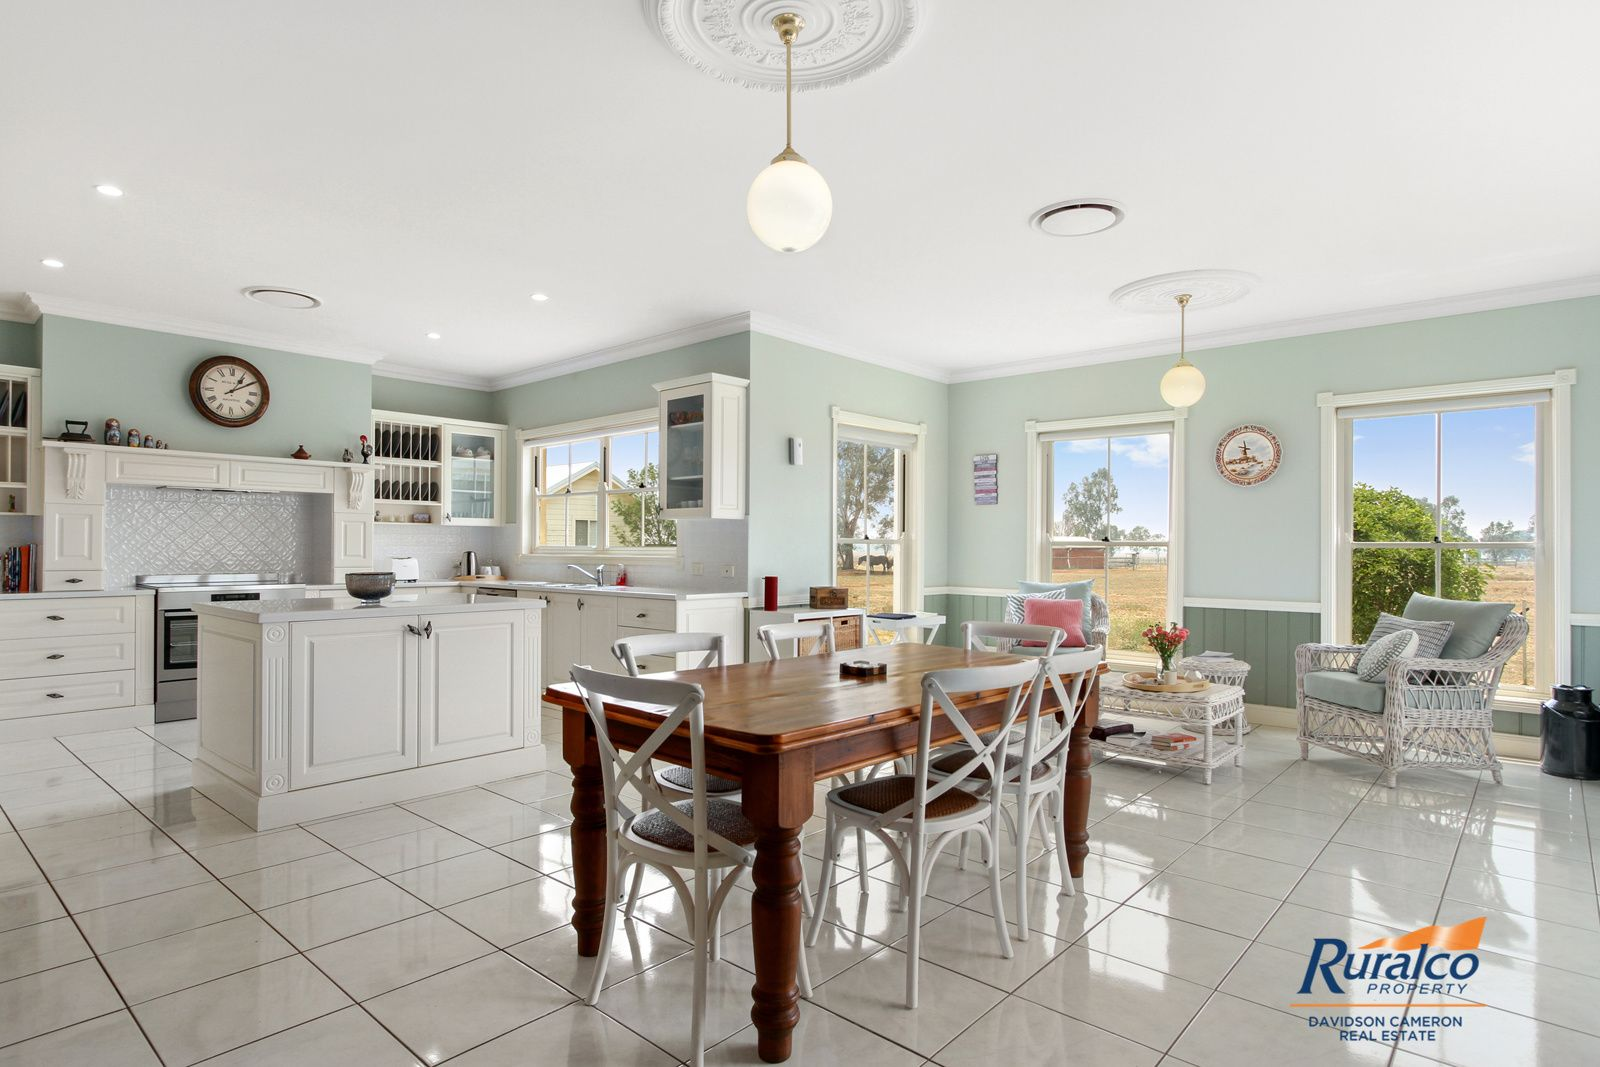 Rosebud 926 Appleby Lane, Tamworth NSW 2340, Image 1